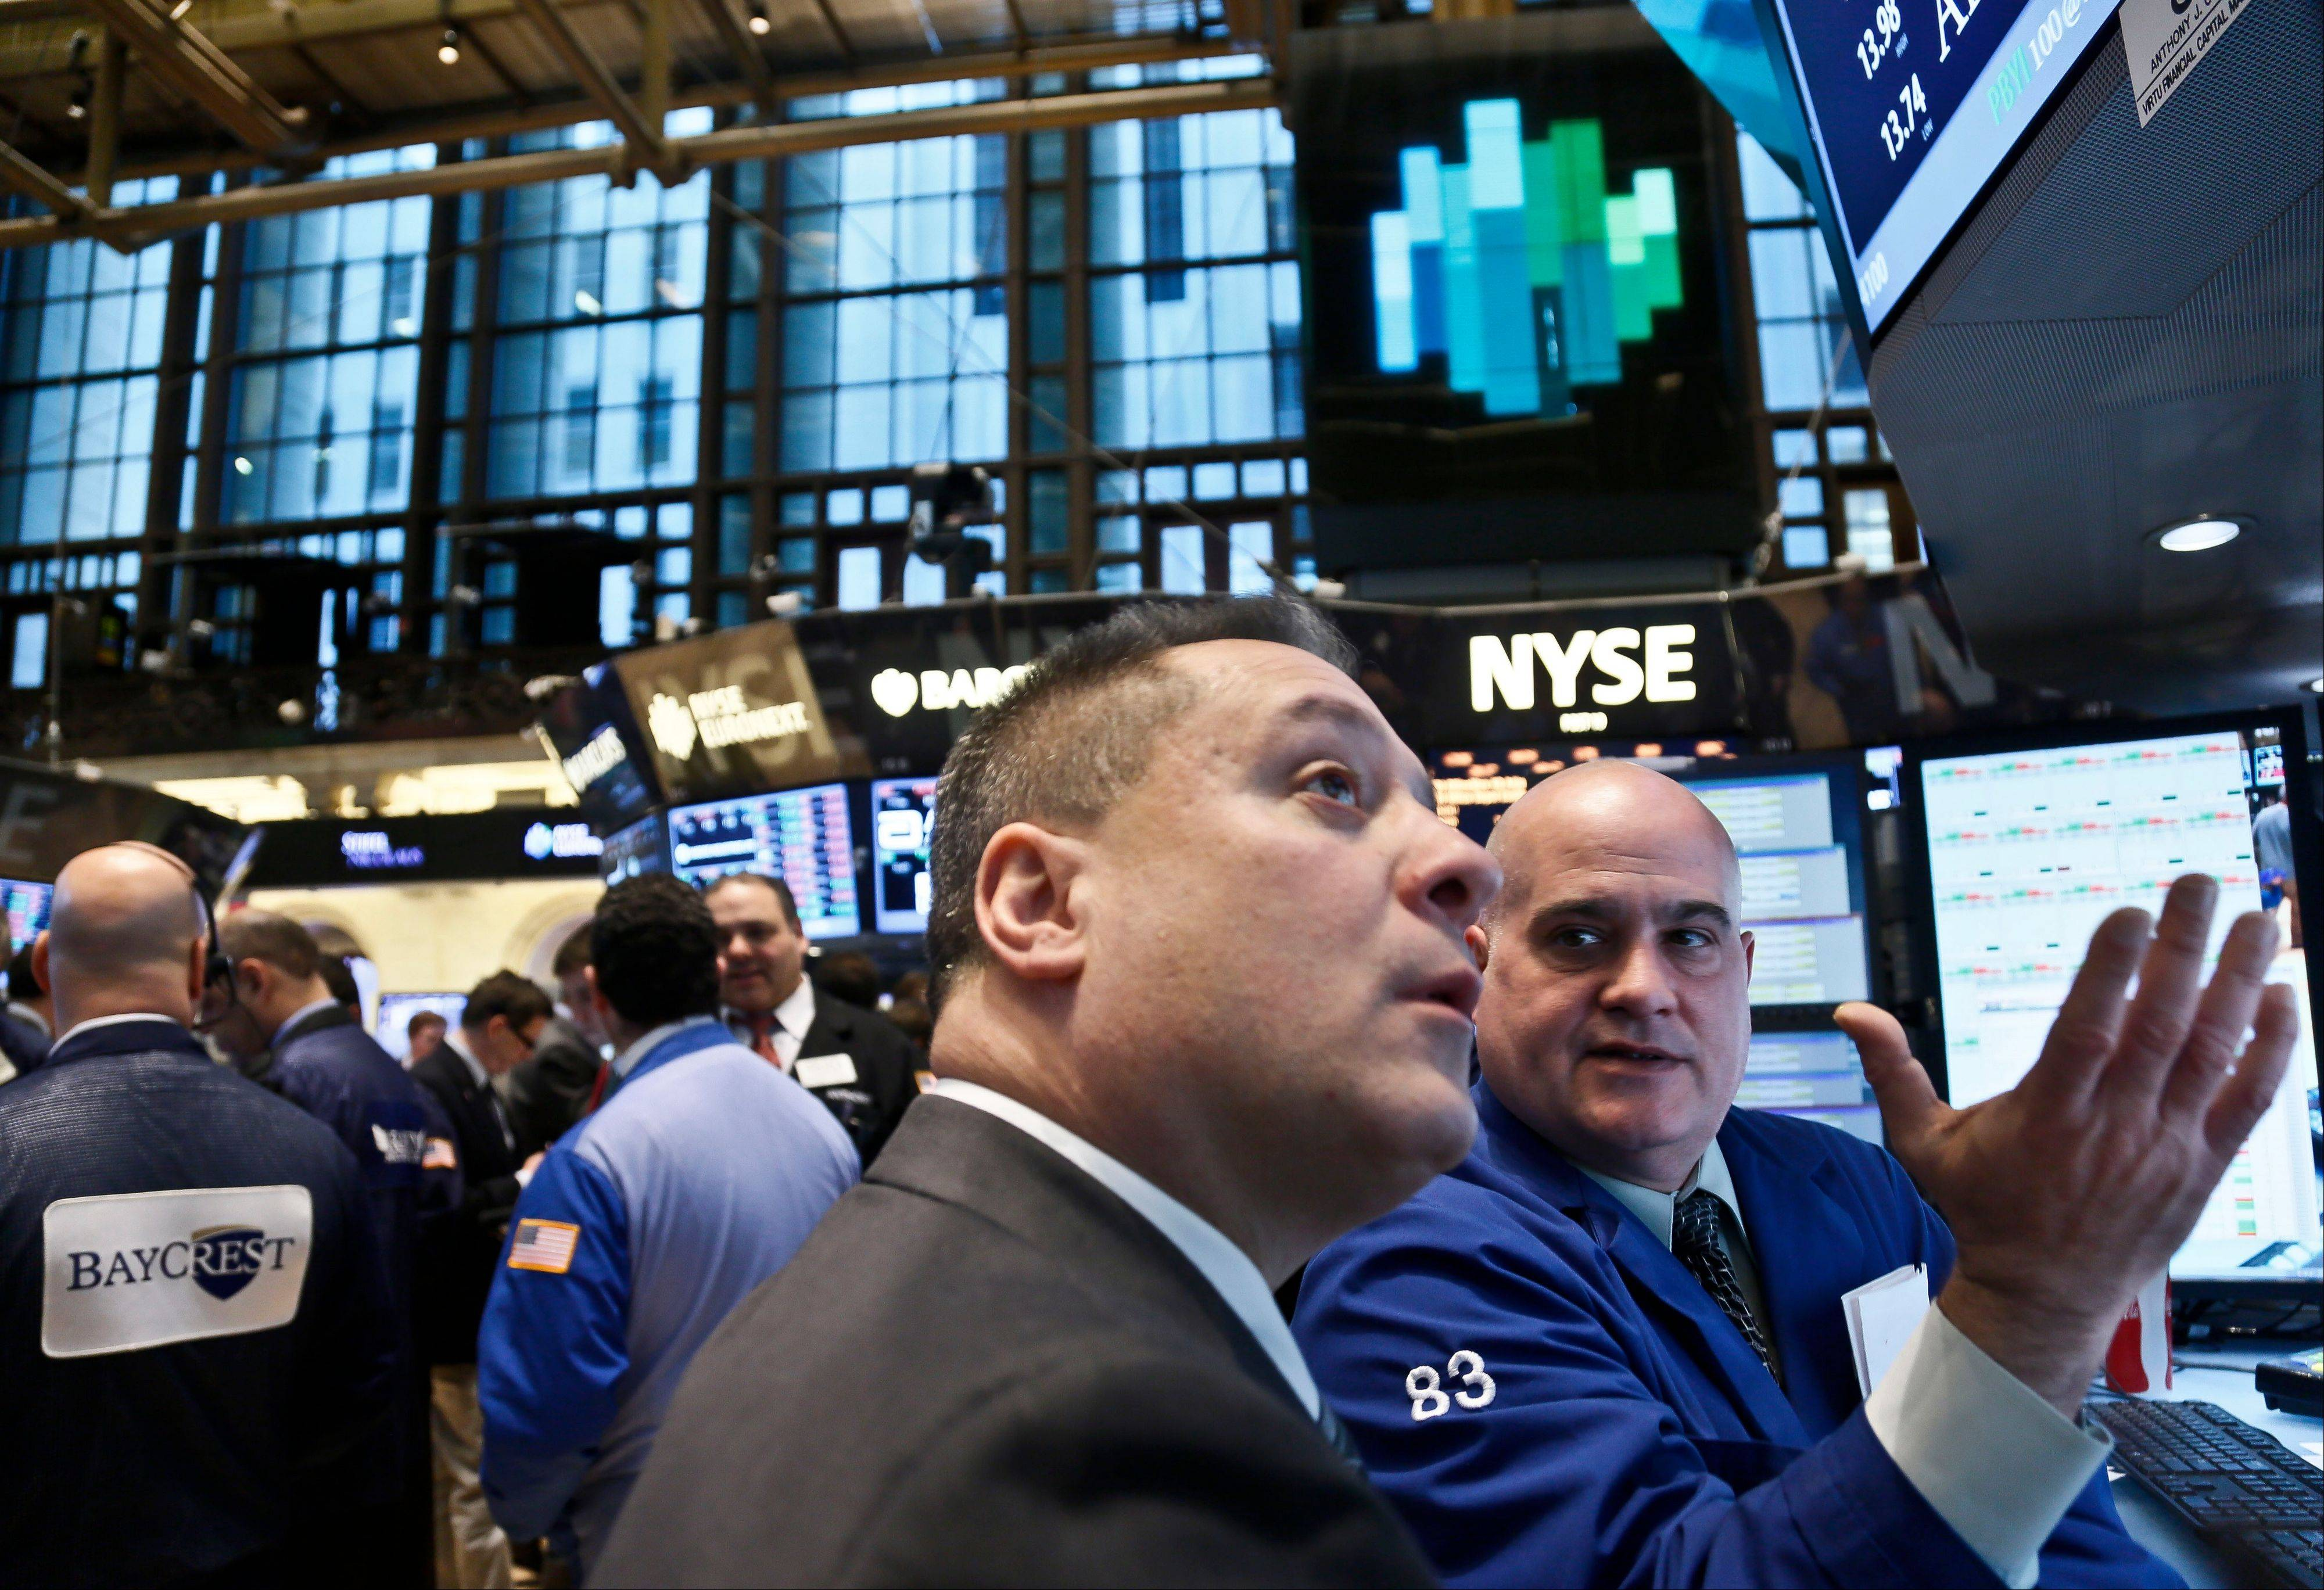 ASSOCIATED PRESSU.S. stocks fell from five-year highs, giving the Standard & Poor's 500 Index its biggest decline since November, as minutes from the Federal Reserve's last meeting showed a debate over further stimulus action.